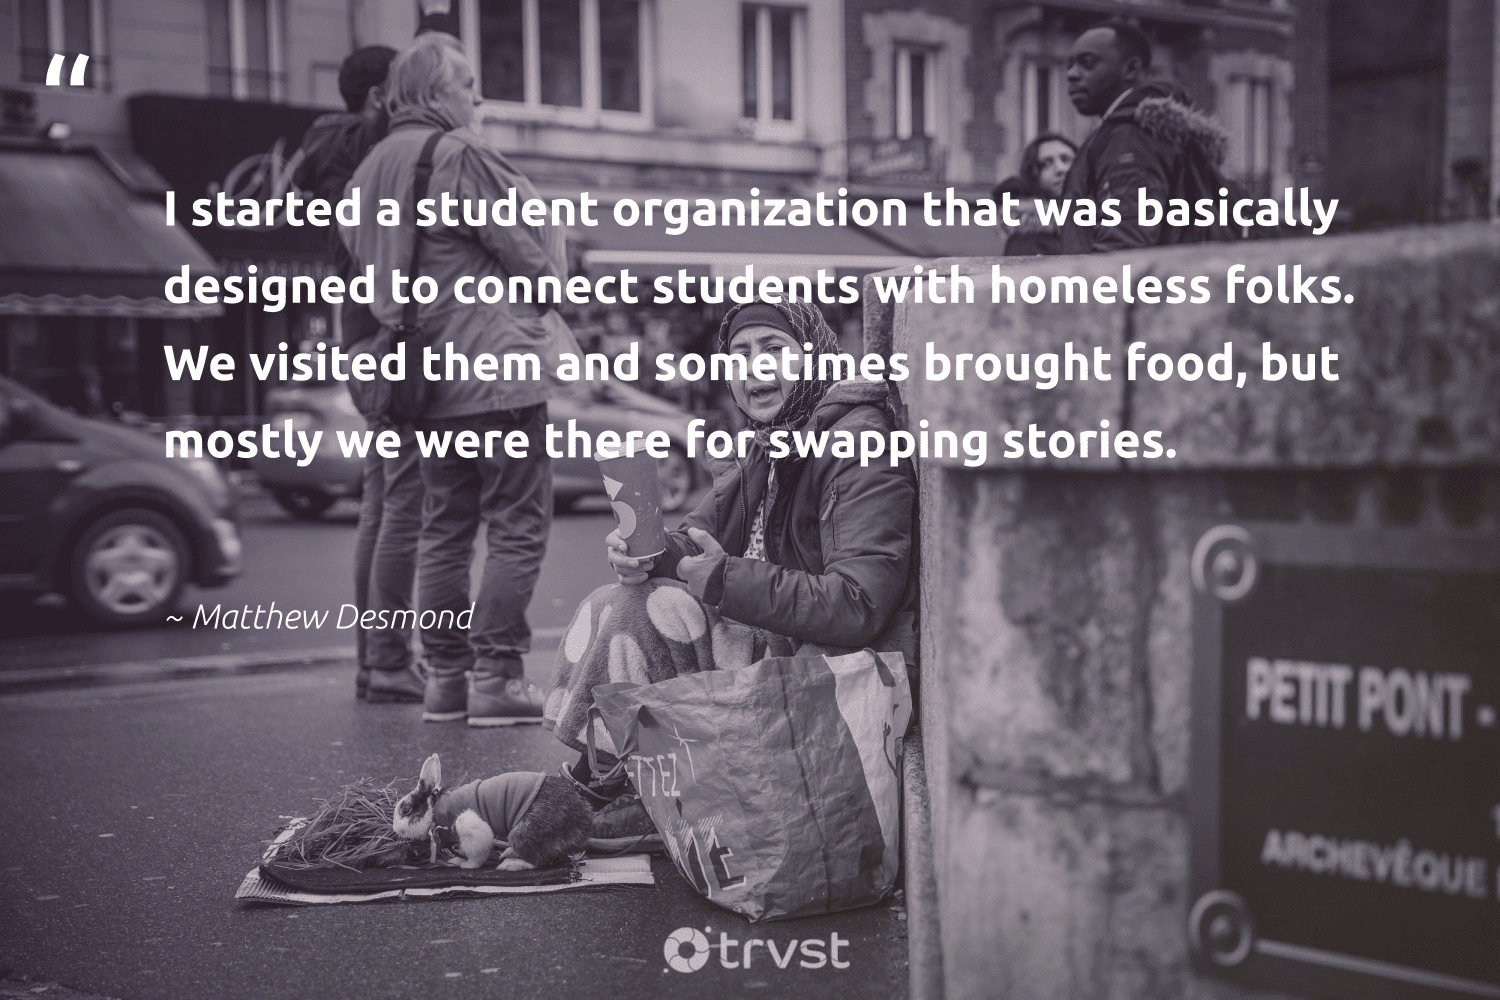 """""""I started a student organization that was basically designed to connect students with homeless folks. We visited them and sometimes brought food, but mostly we were there for swapping stories.""""  - Matthew Desmond #trvst #quotes #homelessness #homeless #food #students #equalopportunity #weareallone #socialchange #sustainablefutures #equalrights #bethechange"""